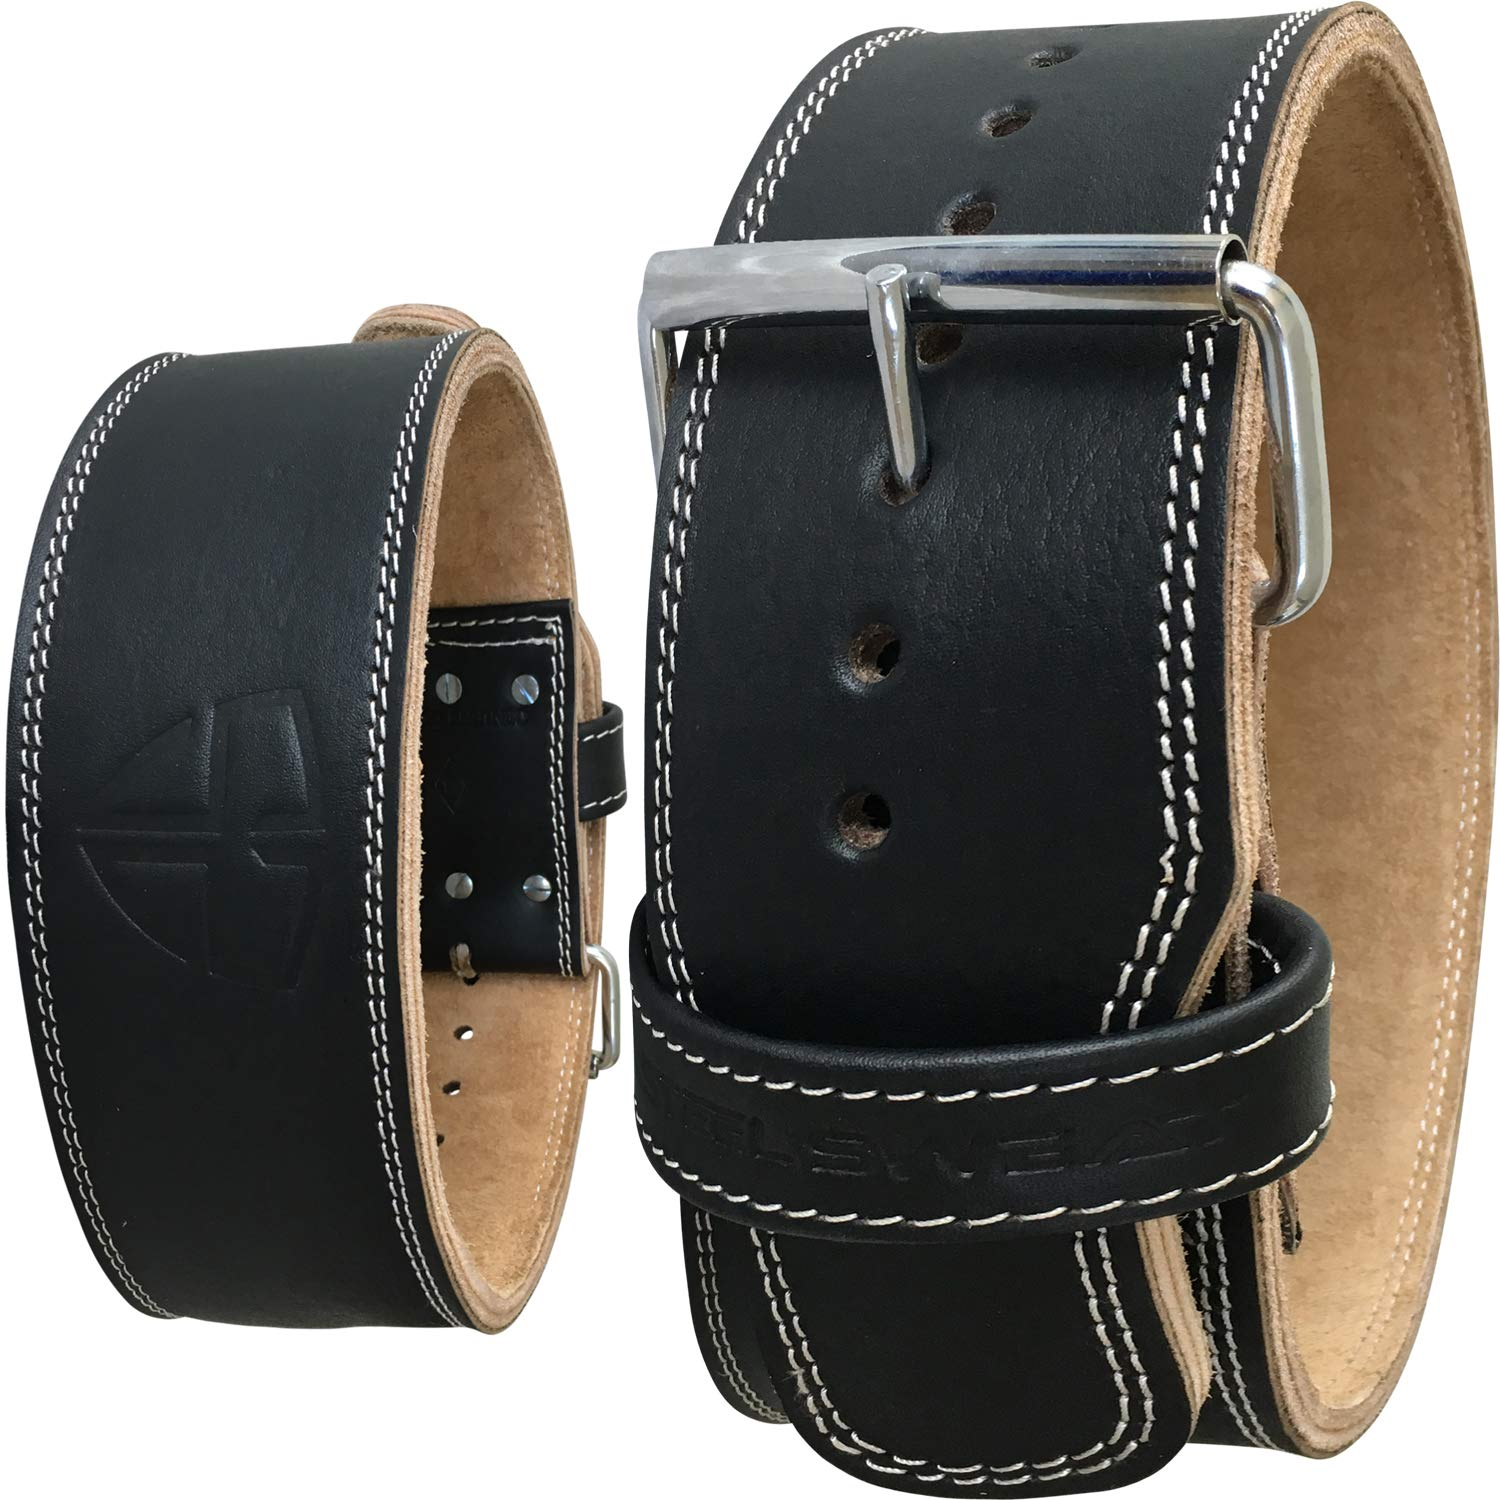 Steel Sweat Weight Lifting Belt - 4 Inches Wide by 10mm - Single Prong Powerlifting Belt That's Heavy Duty - Genuine Cowhide Leather - X-Large Texus by Steel Sweat (Image #1)